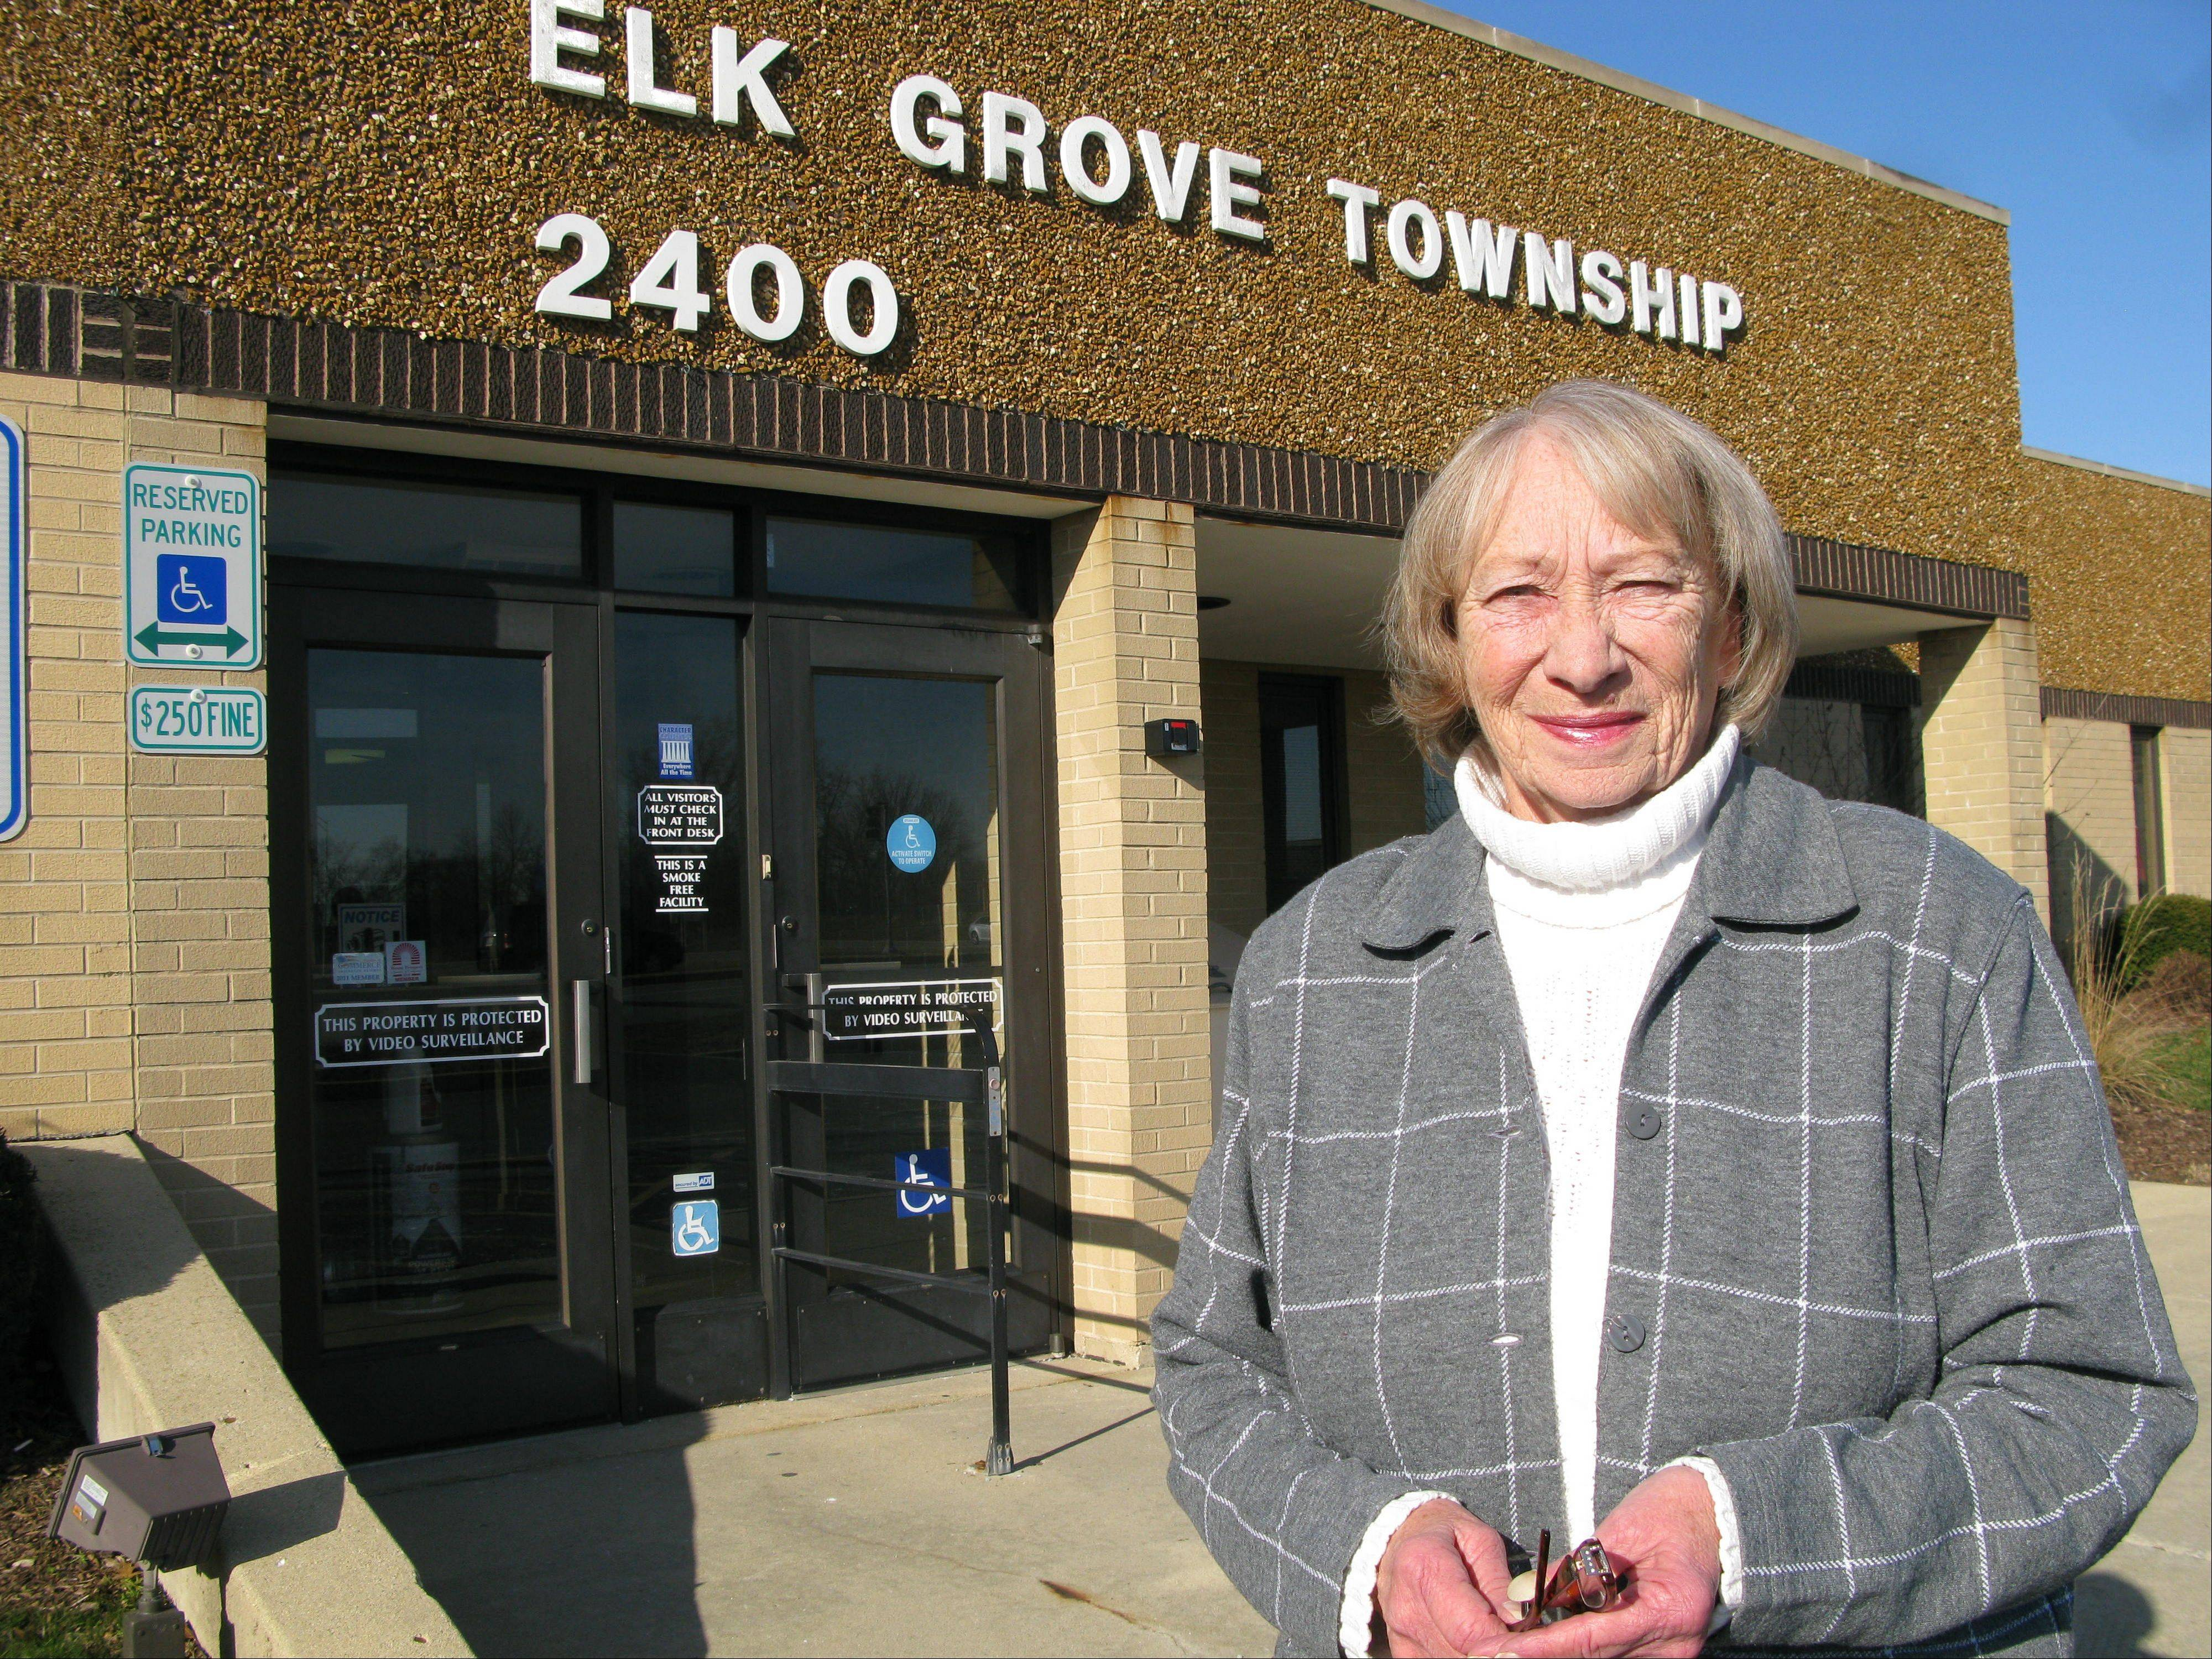 Elk Grove Township Supervisor Nanci Vanderweel is retiring this April after nearly 28 years with the township. Vanderweel was the township's first female supervisor and previously served as an Elk Grove Village trustee.